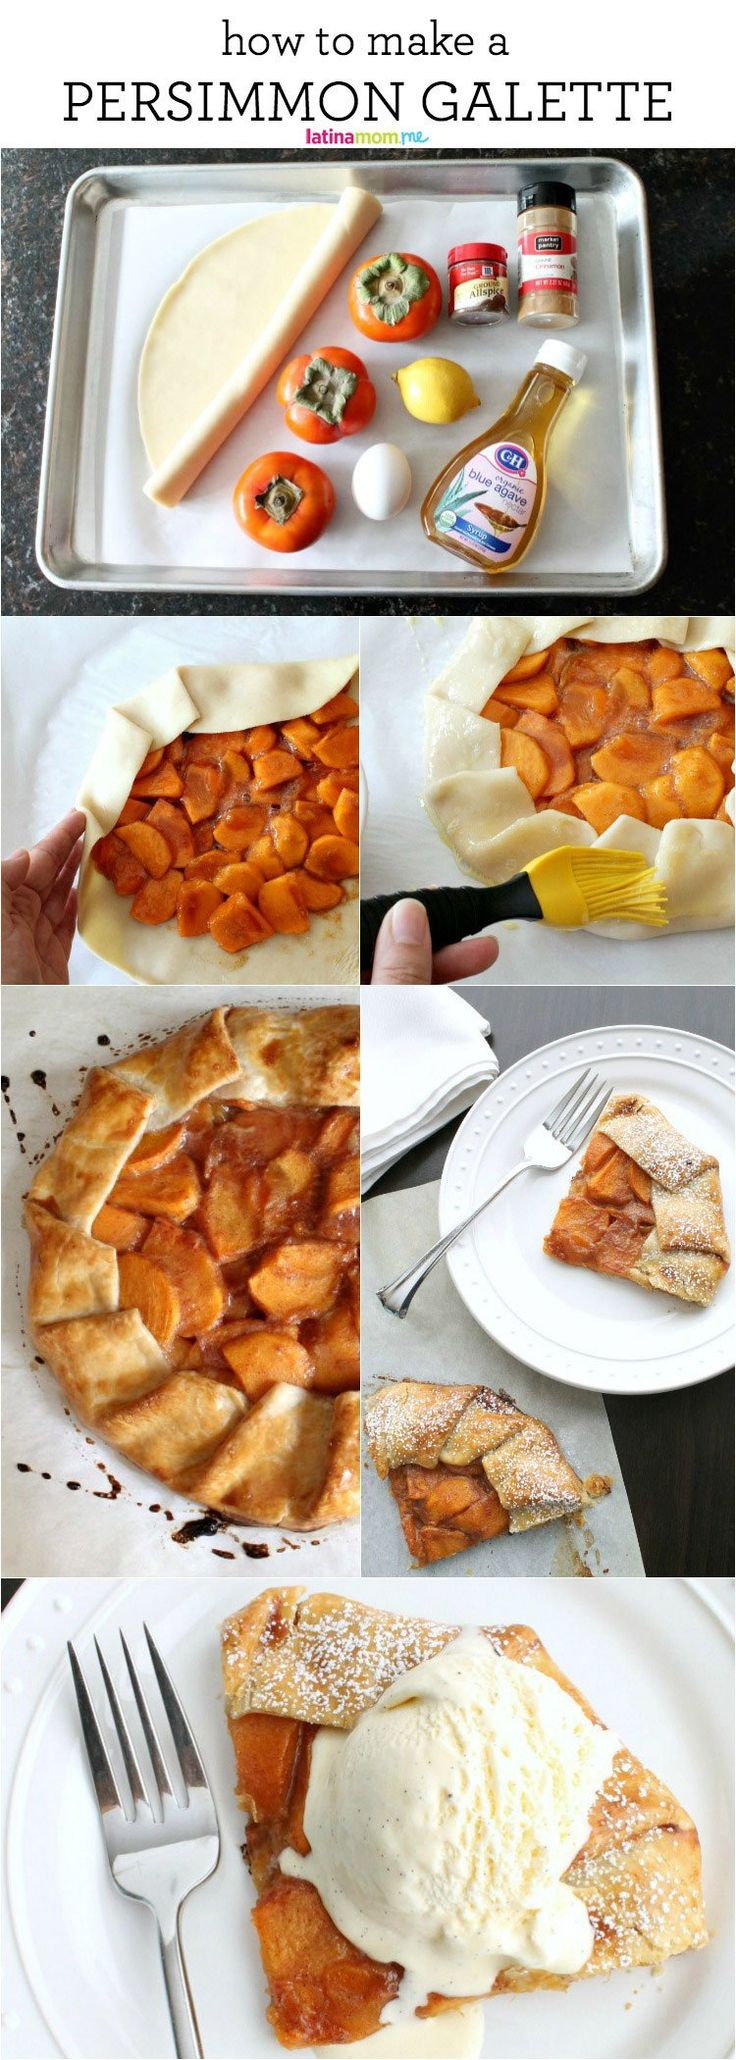 Simple Persimmon Galette - This is the perfect pastry for using up leftover fruit, or when you need to make a very quick dessert.